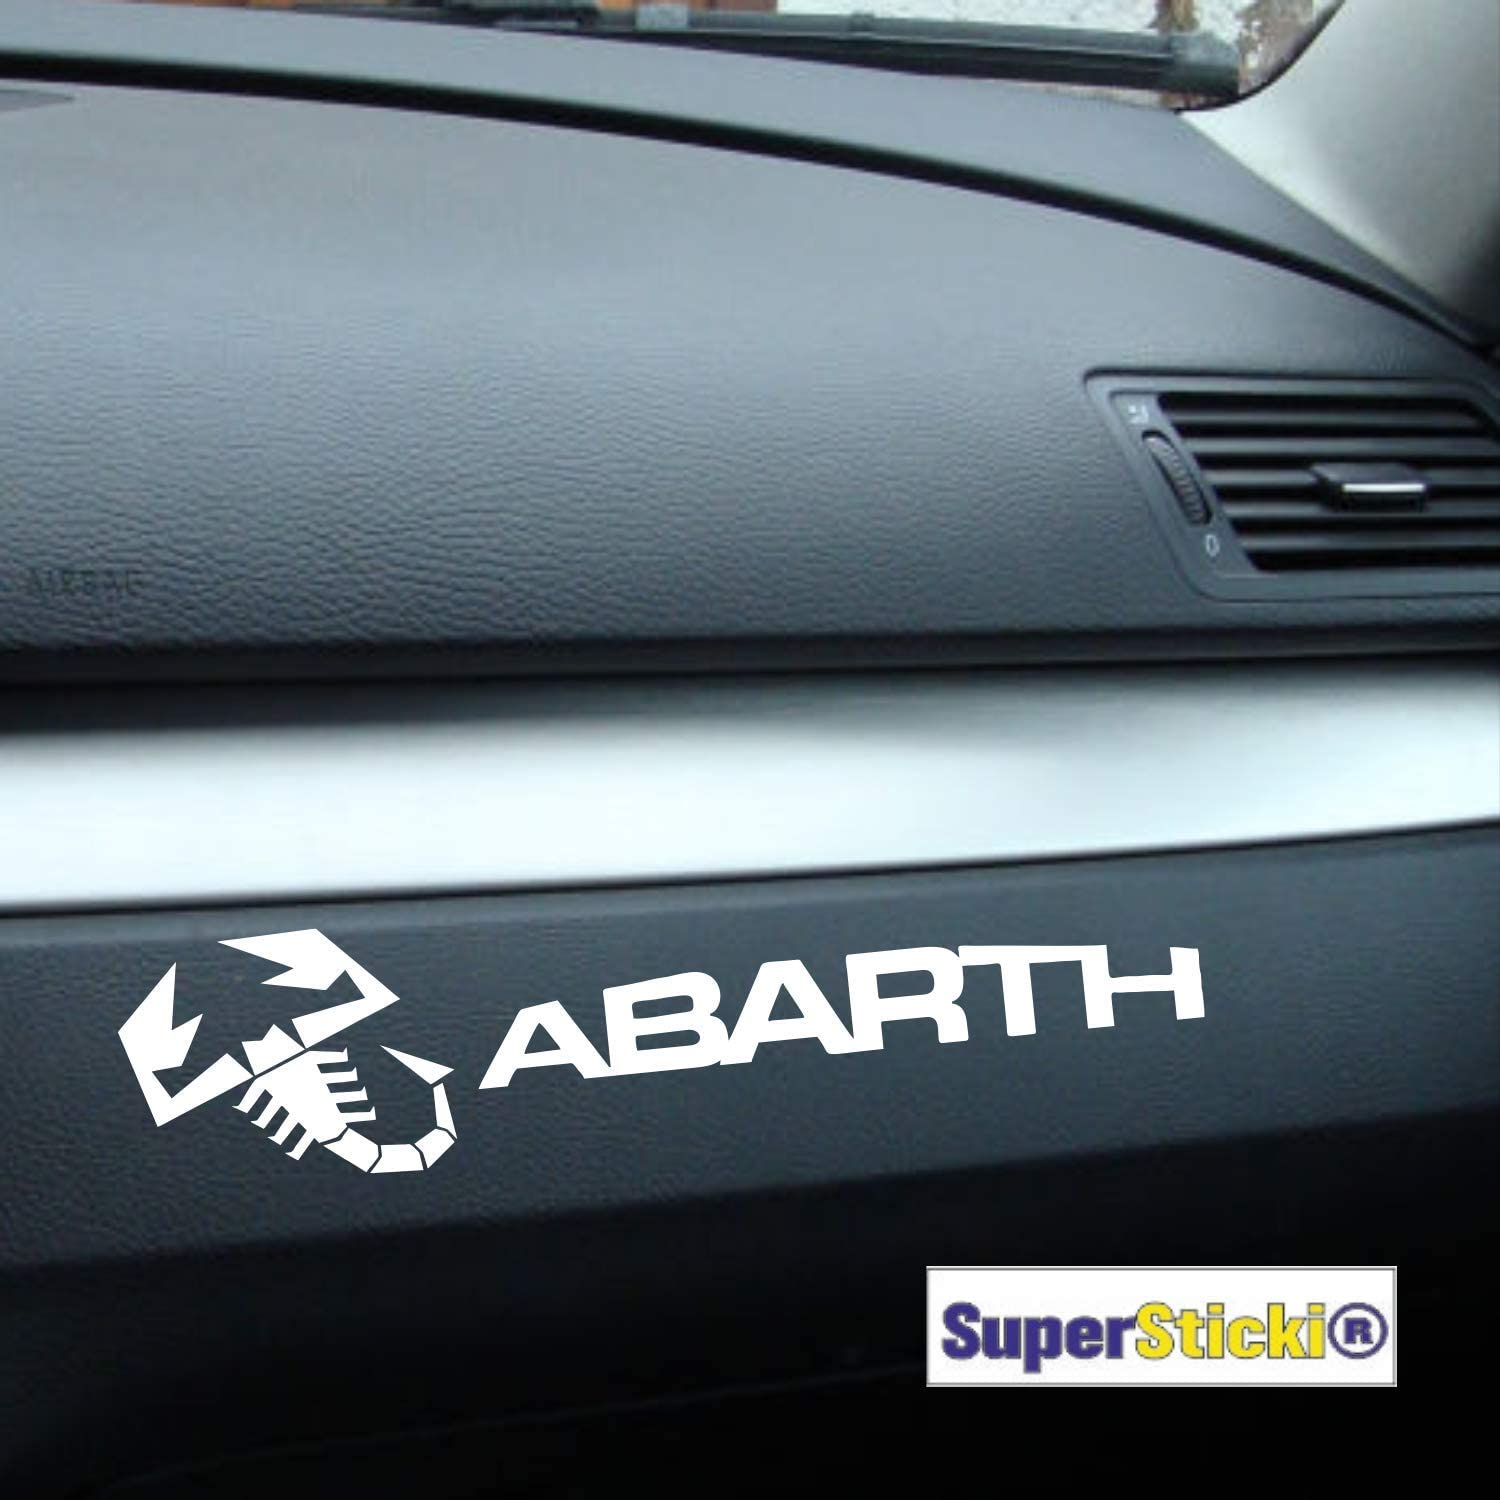 Supersticki 2 X Abarth Skorpion Armaturenbrett Rennsport Racing Tuning Decal Sticker Hobby Aufkleber Decal Sticker Aus Hochleistungsfolie Auto